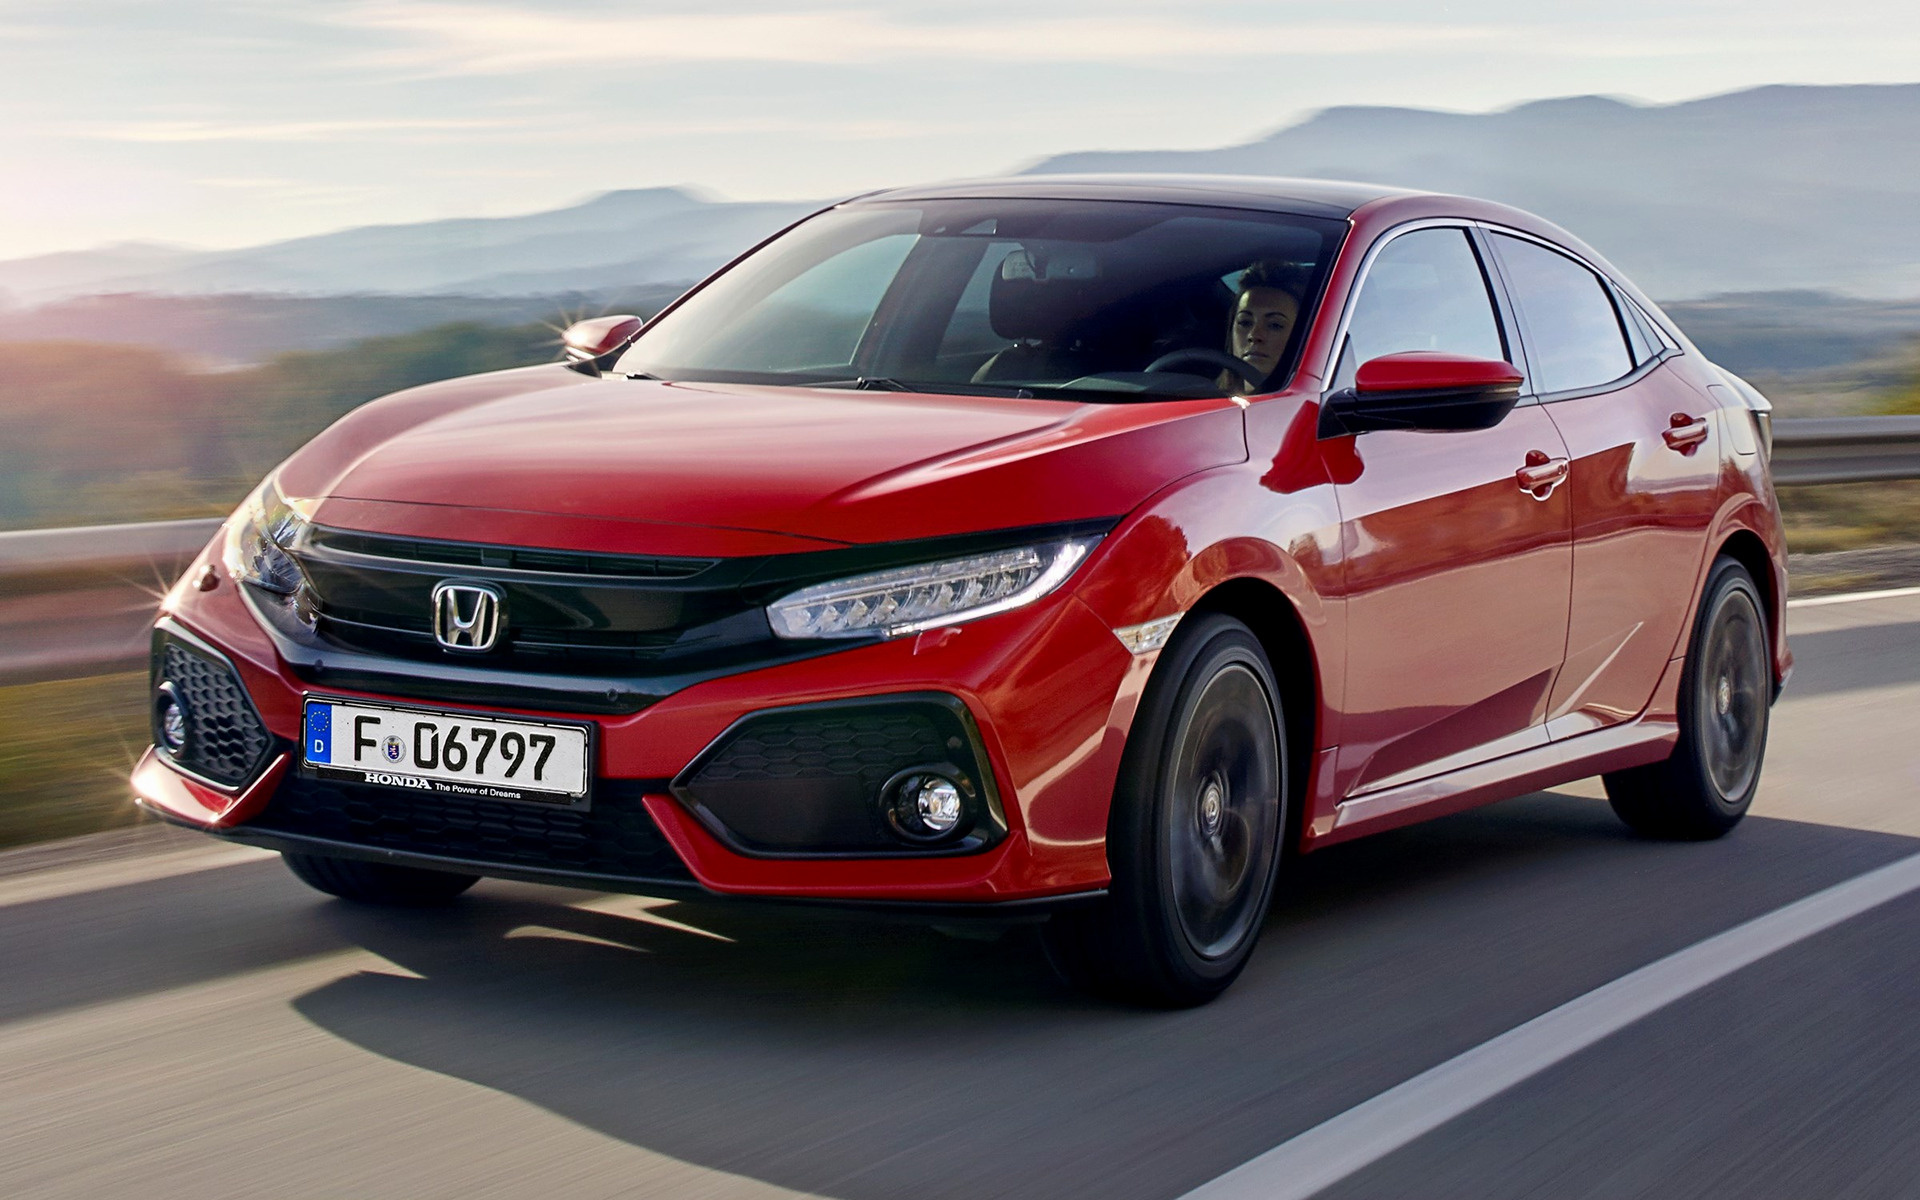 Civic Type R >> 2017 Honda Civic - Wallpapers and HD Images | Car Pixel